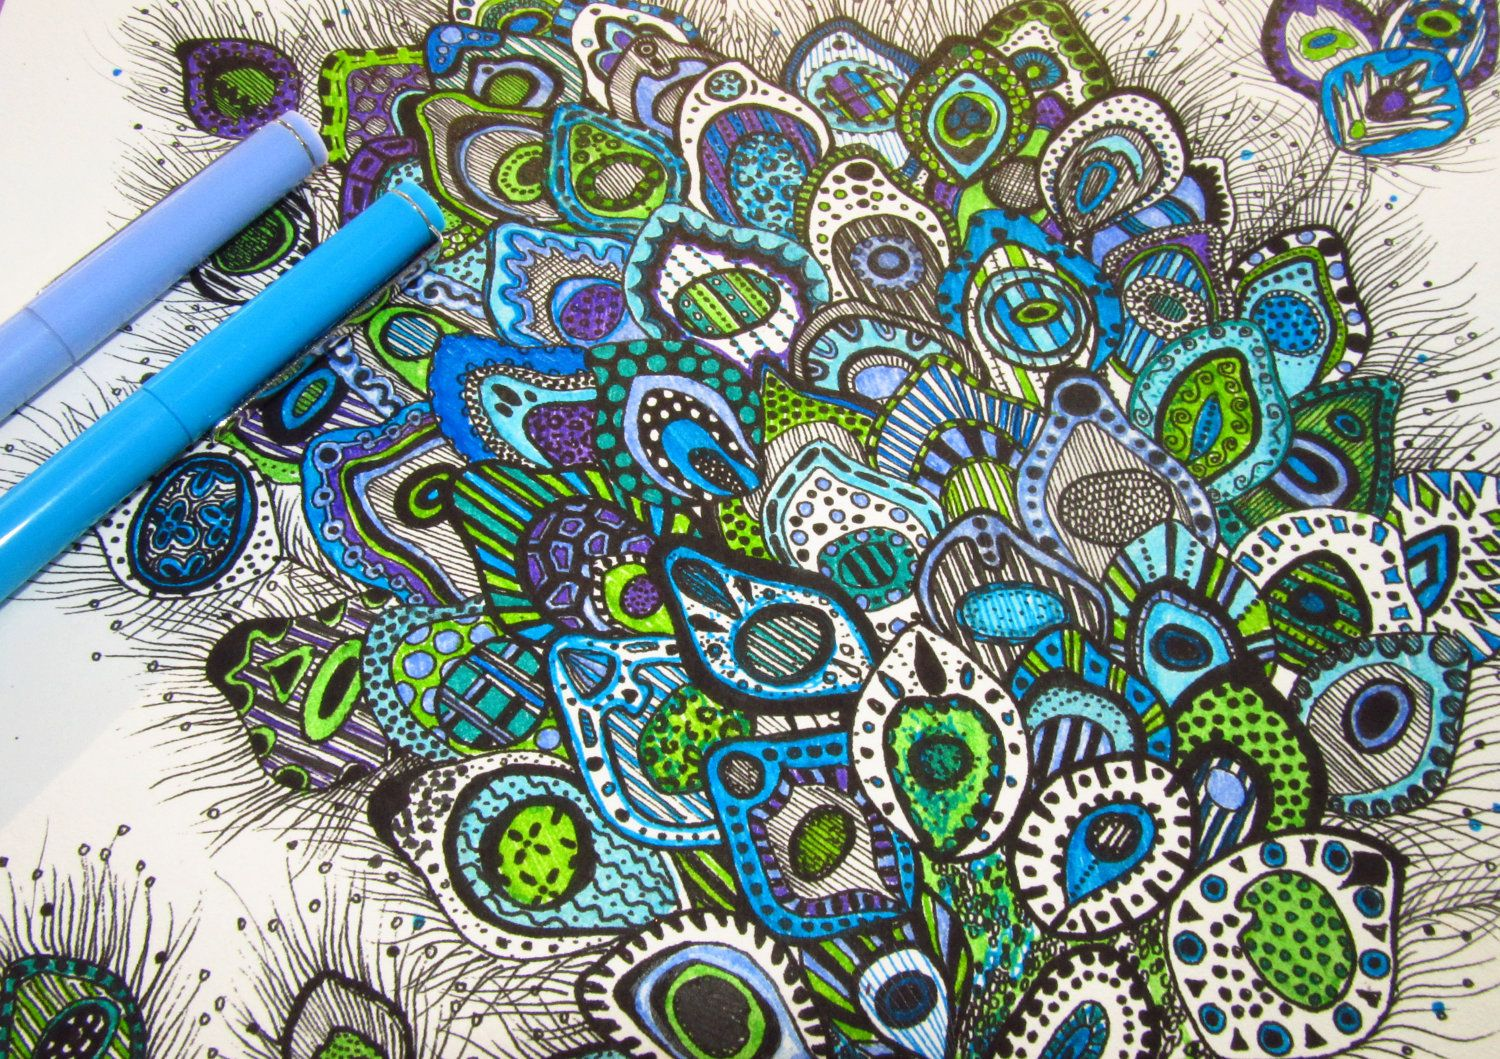 Colorful Peacock Drawing Detailed One of a Kind by ParadoXx Art